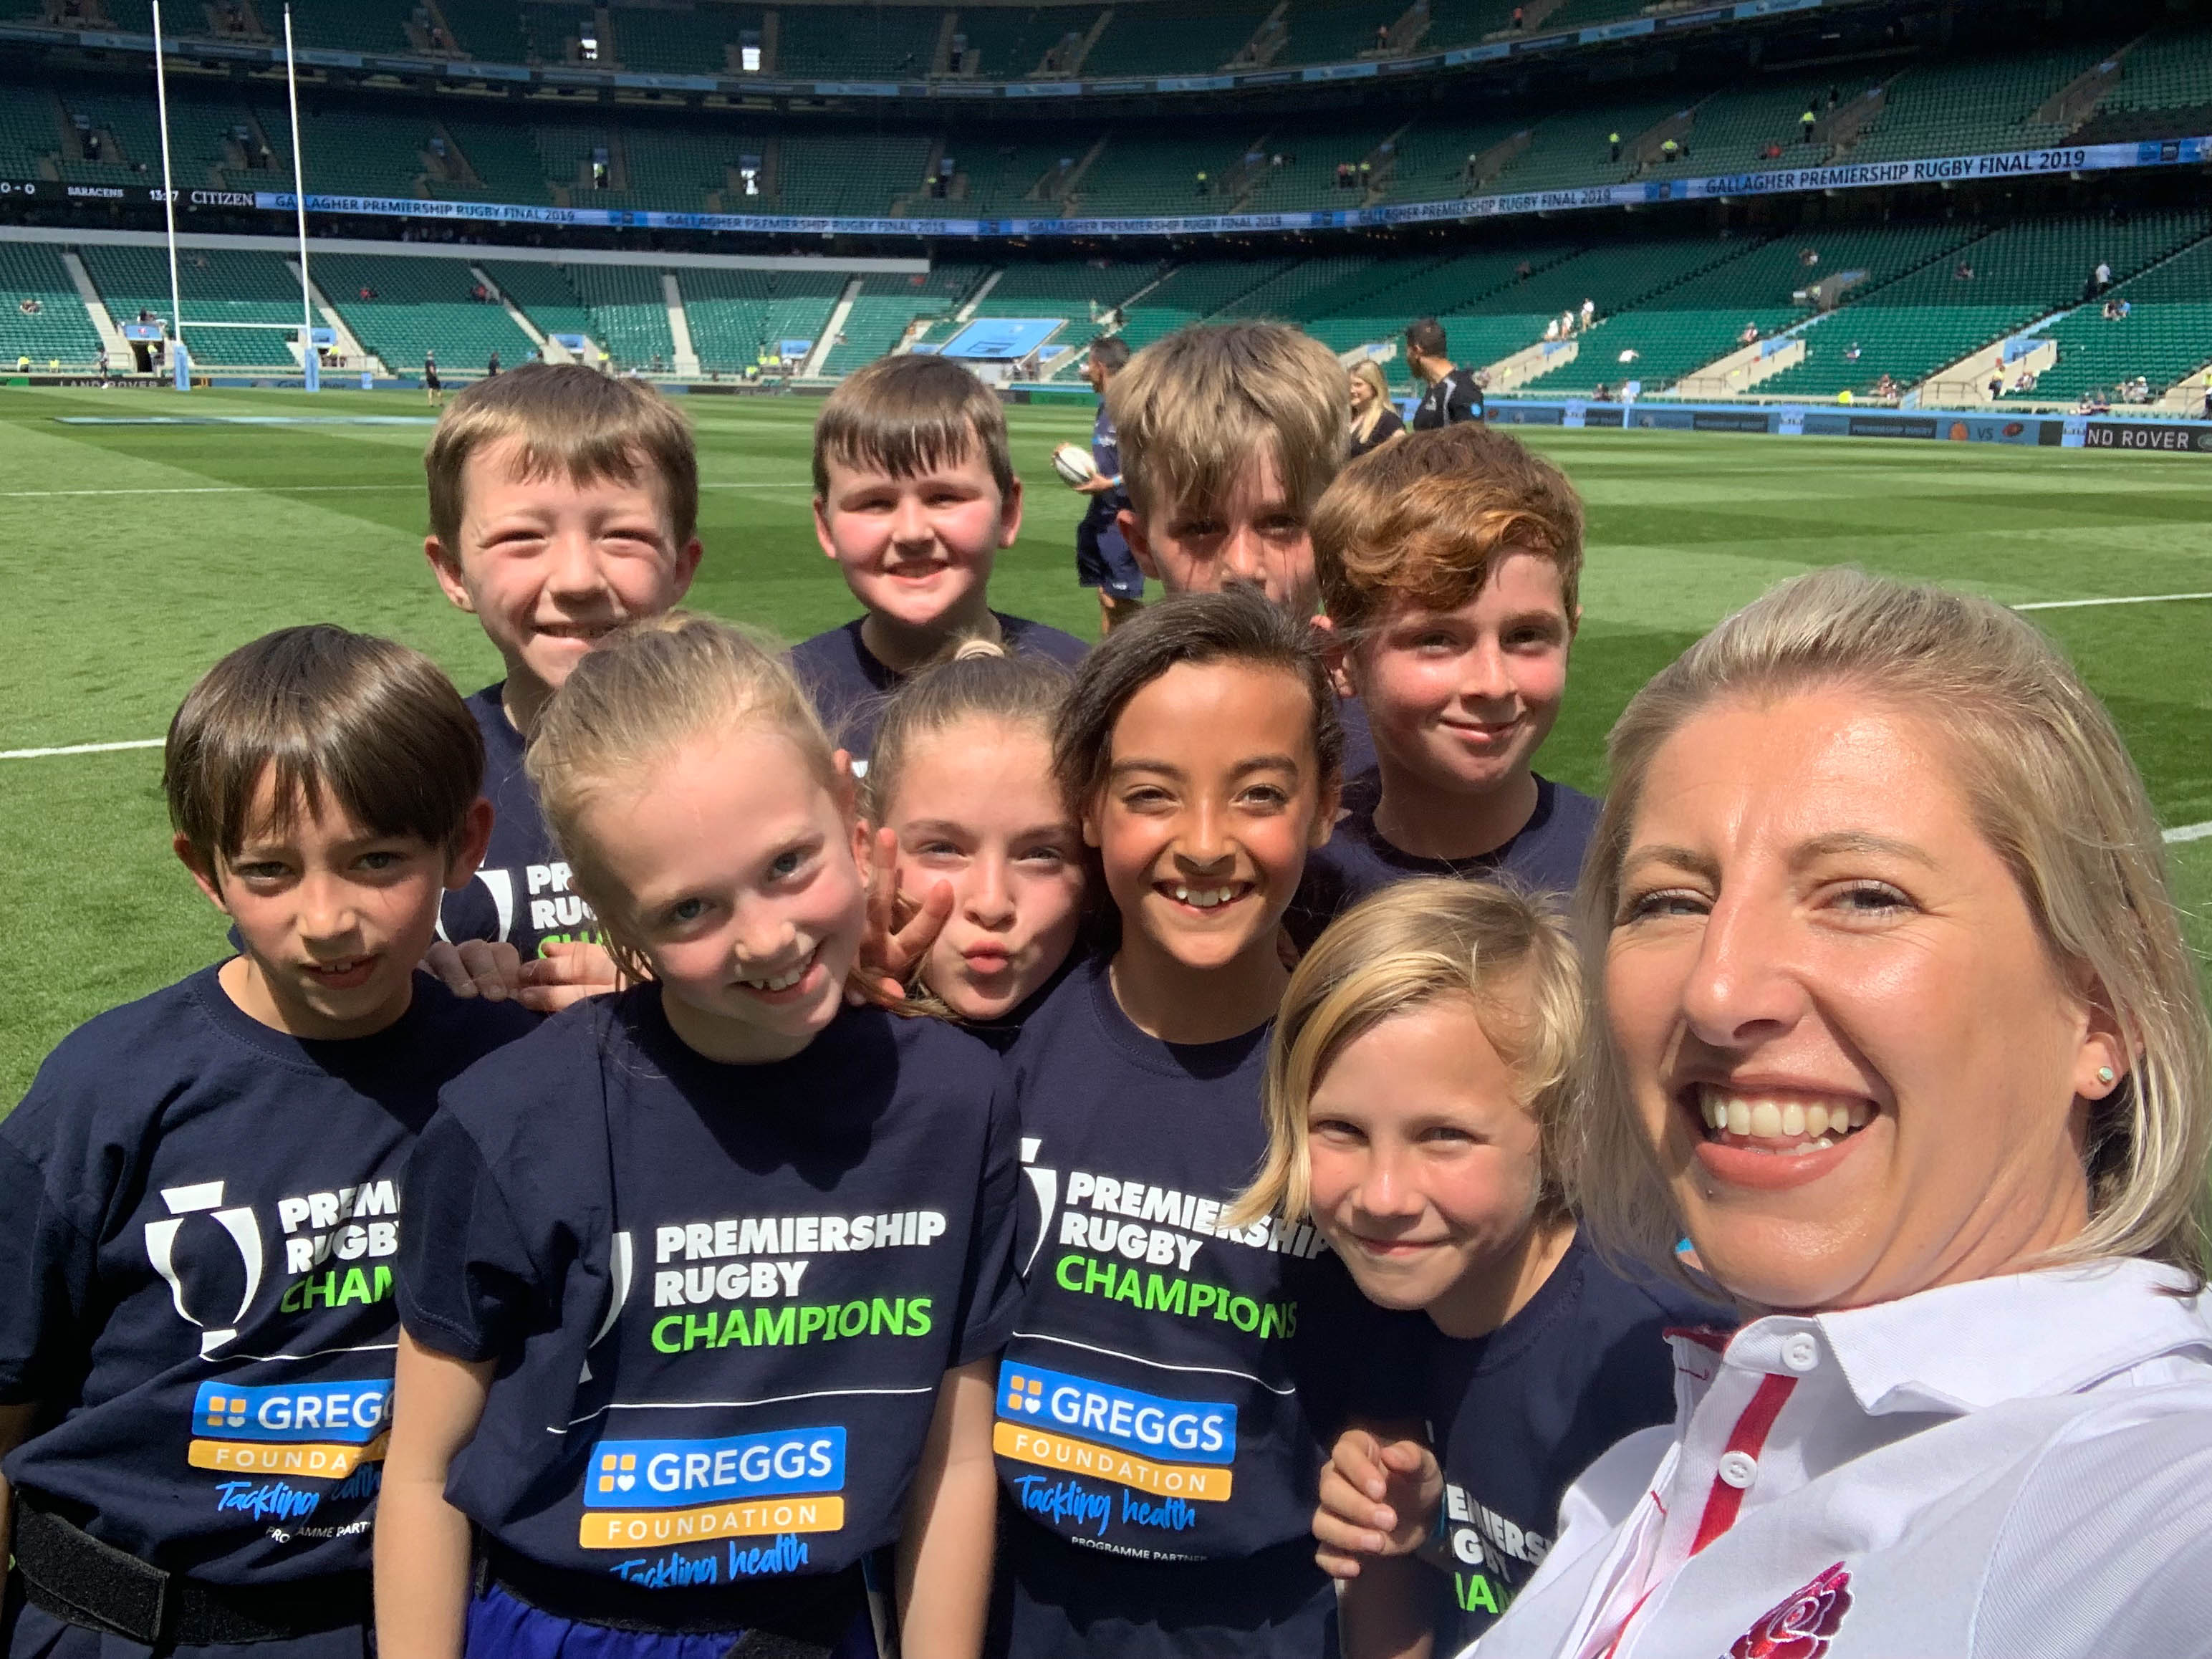 'One of the best days of my life' as pupils soak up the rugby atmosphere at Twickenham